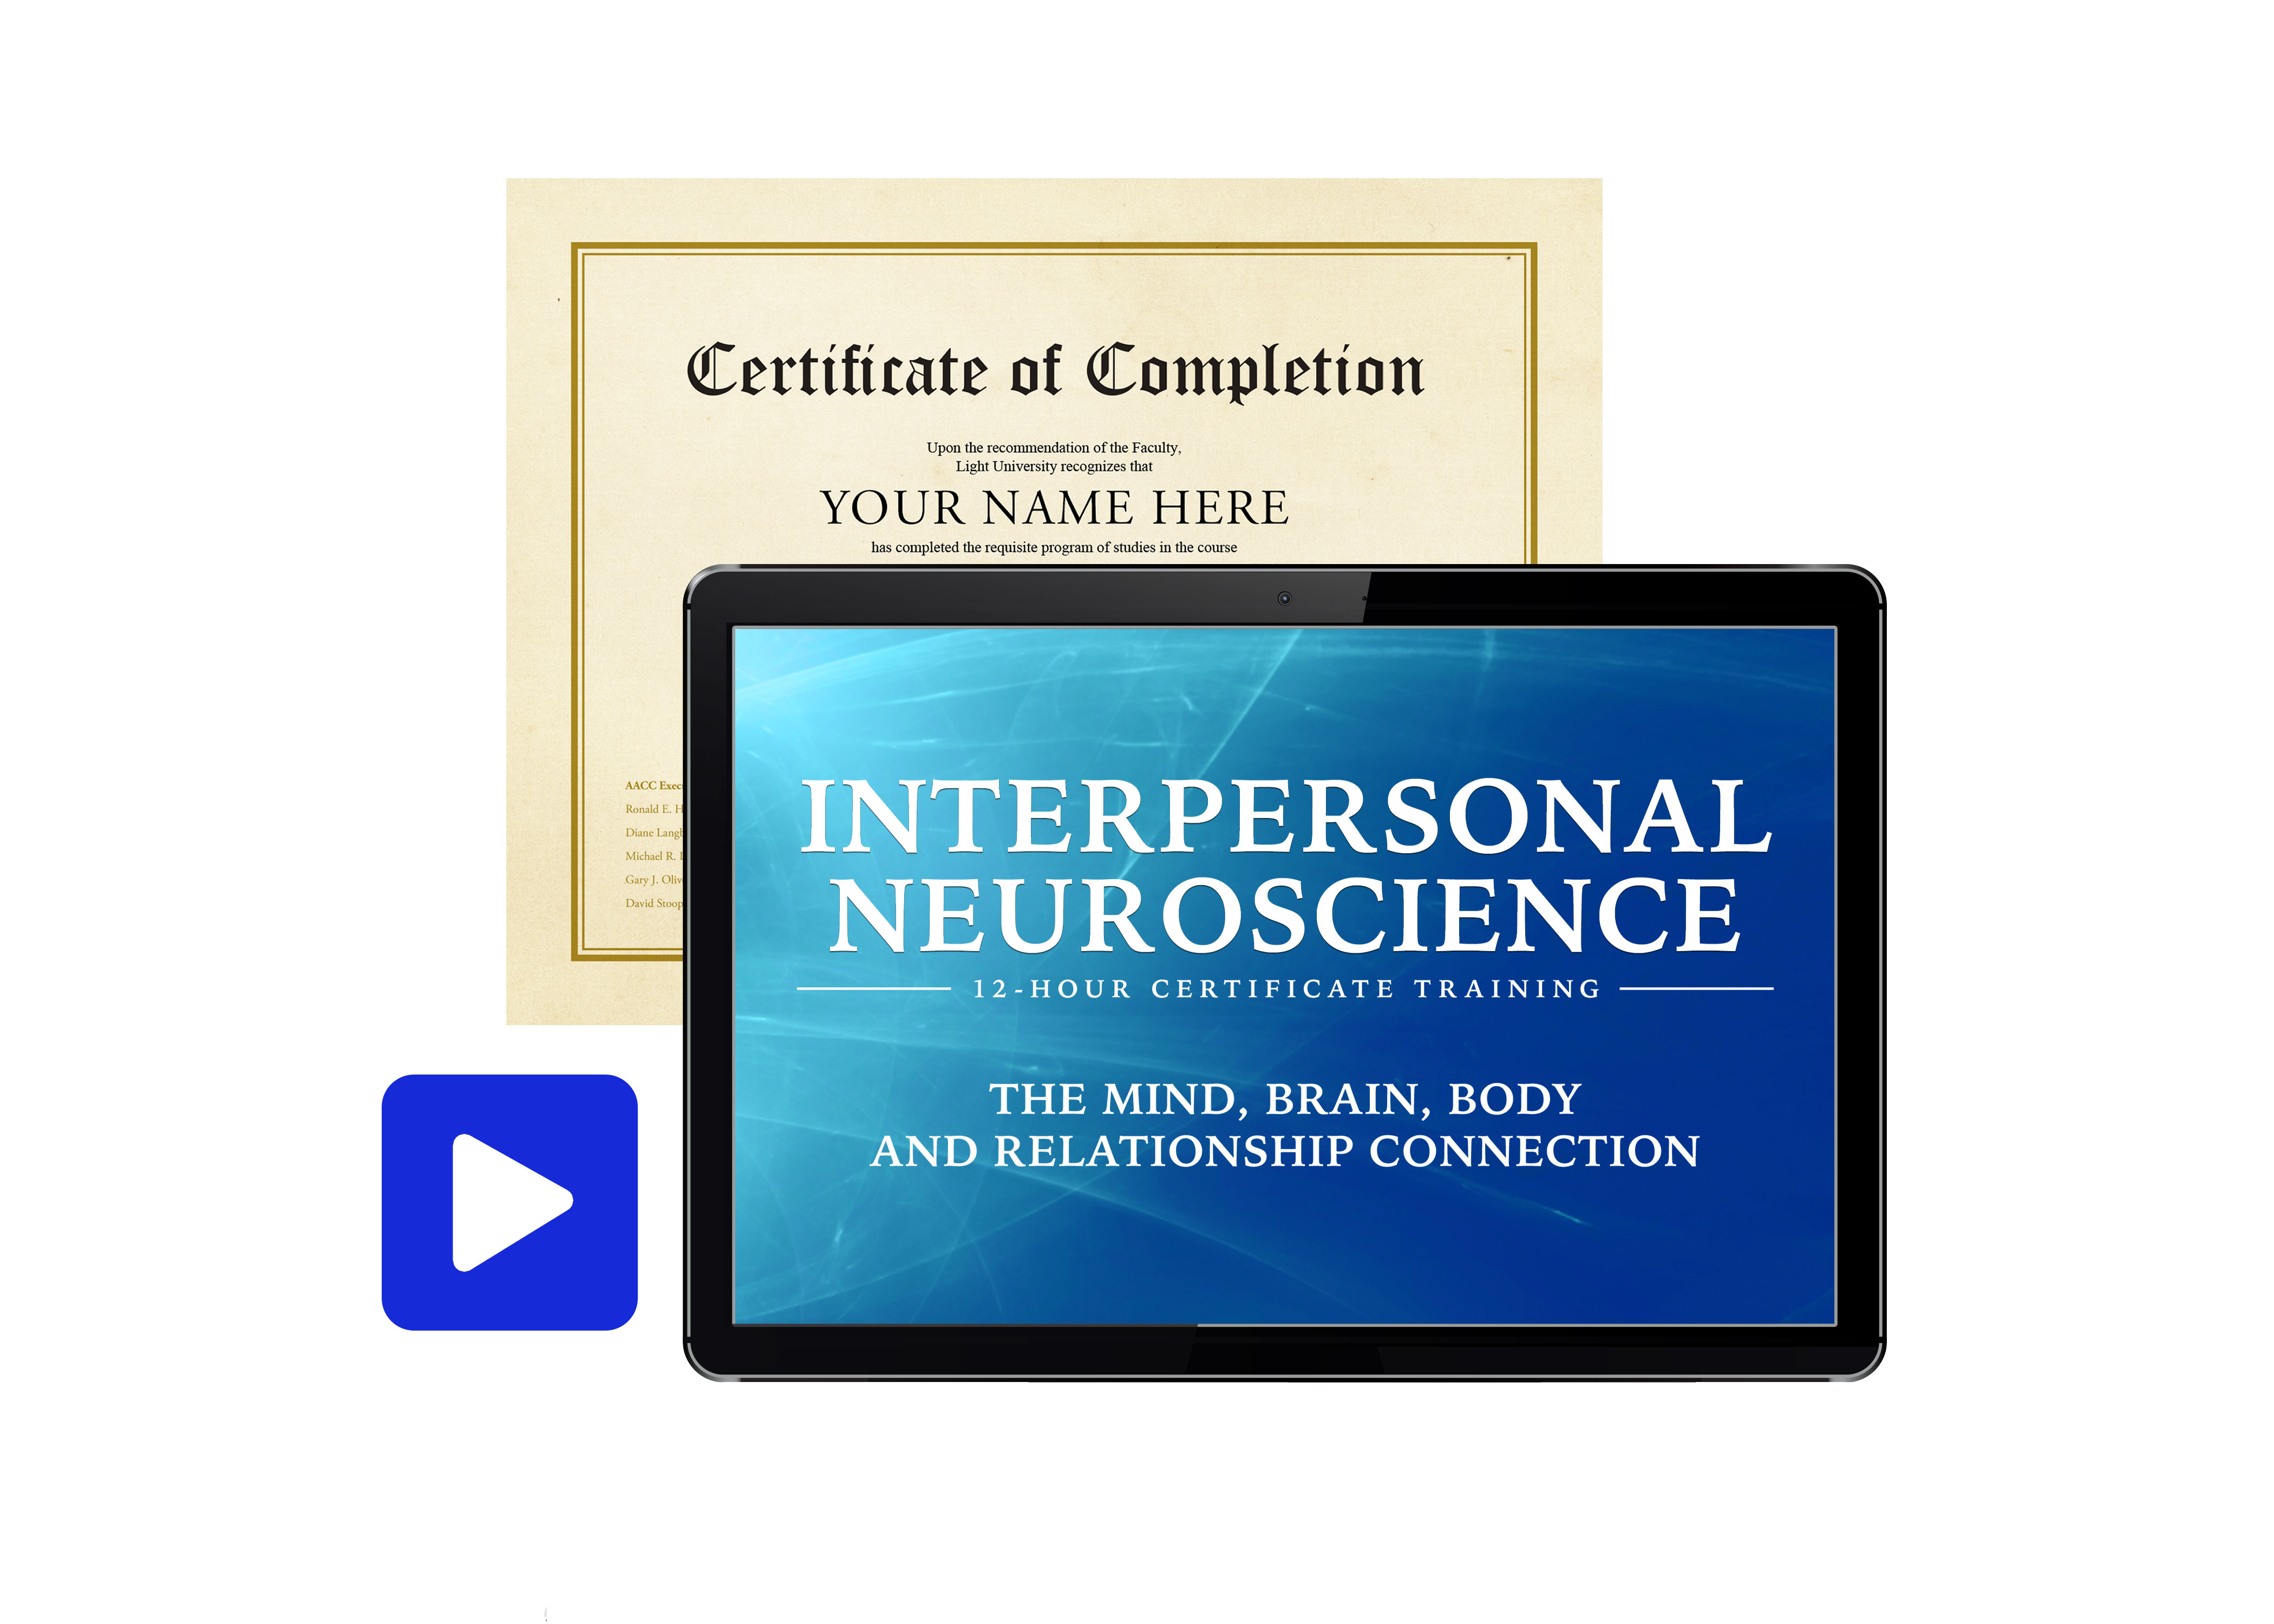 Interpersonal Neuroscience